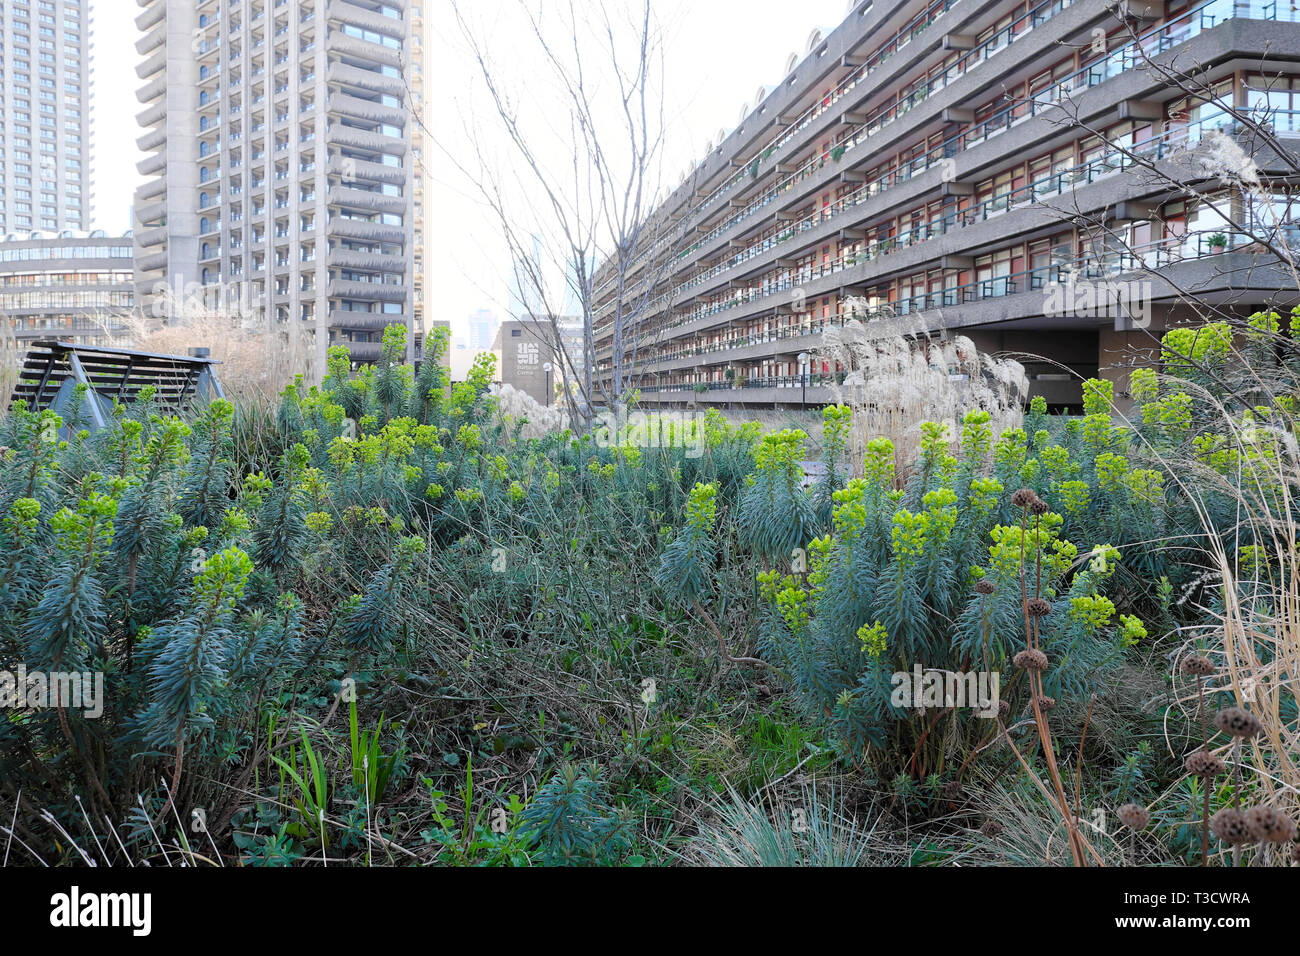 Barbican Garden Stock Photos Barbican Garden Stock Images Alamy